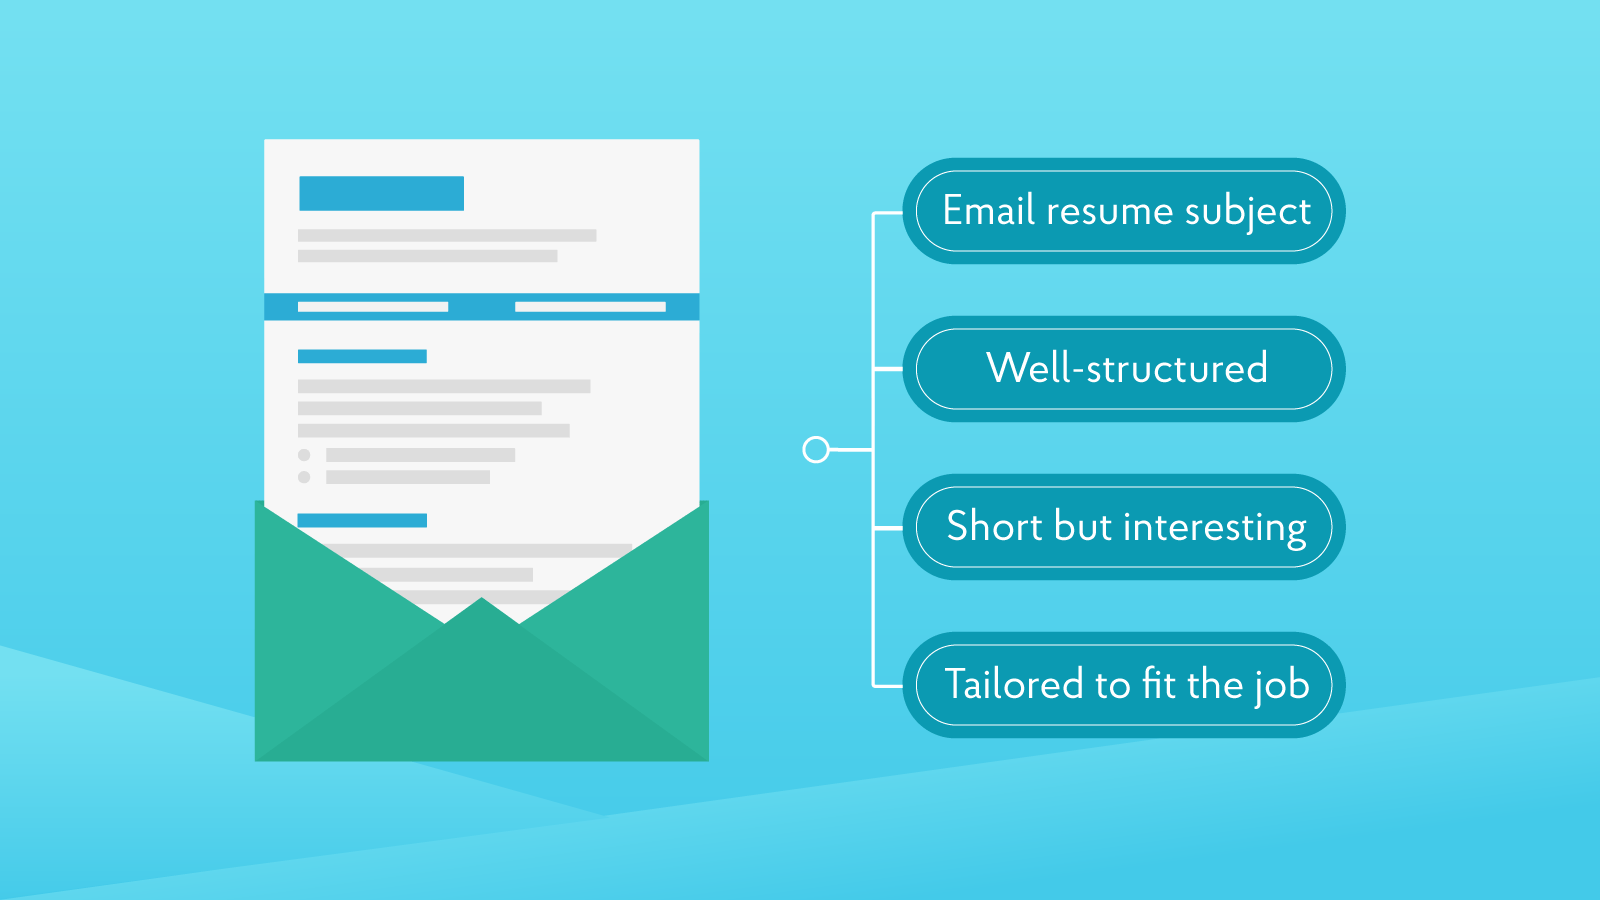 7  vital tips to consider before emailing a resume to an employer